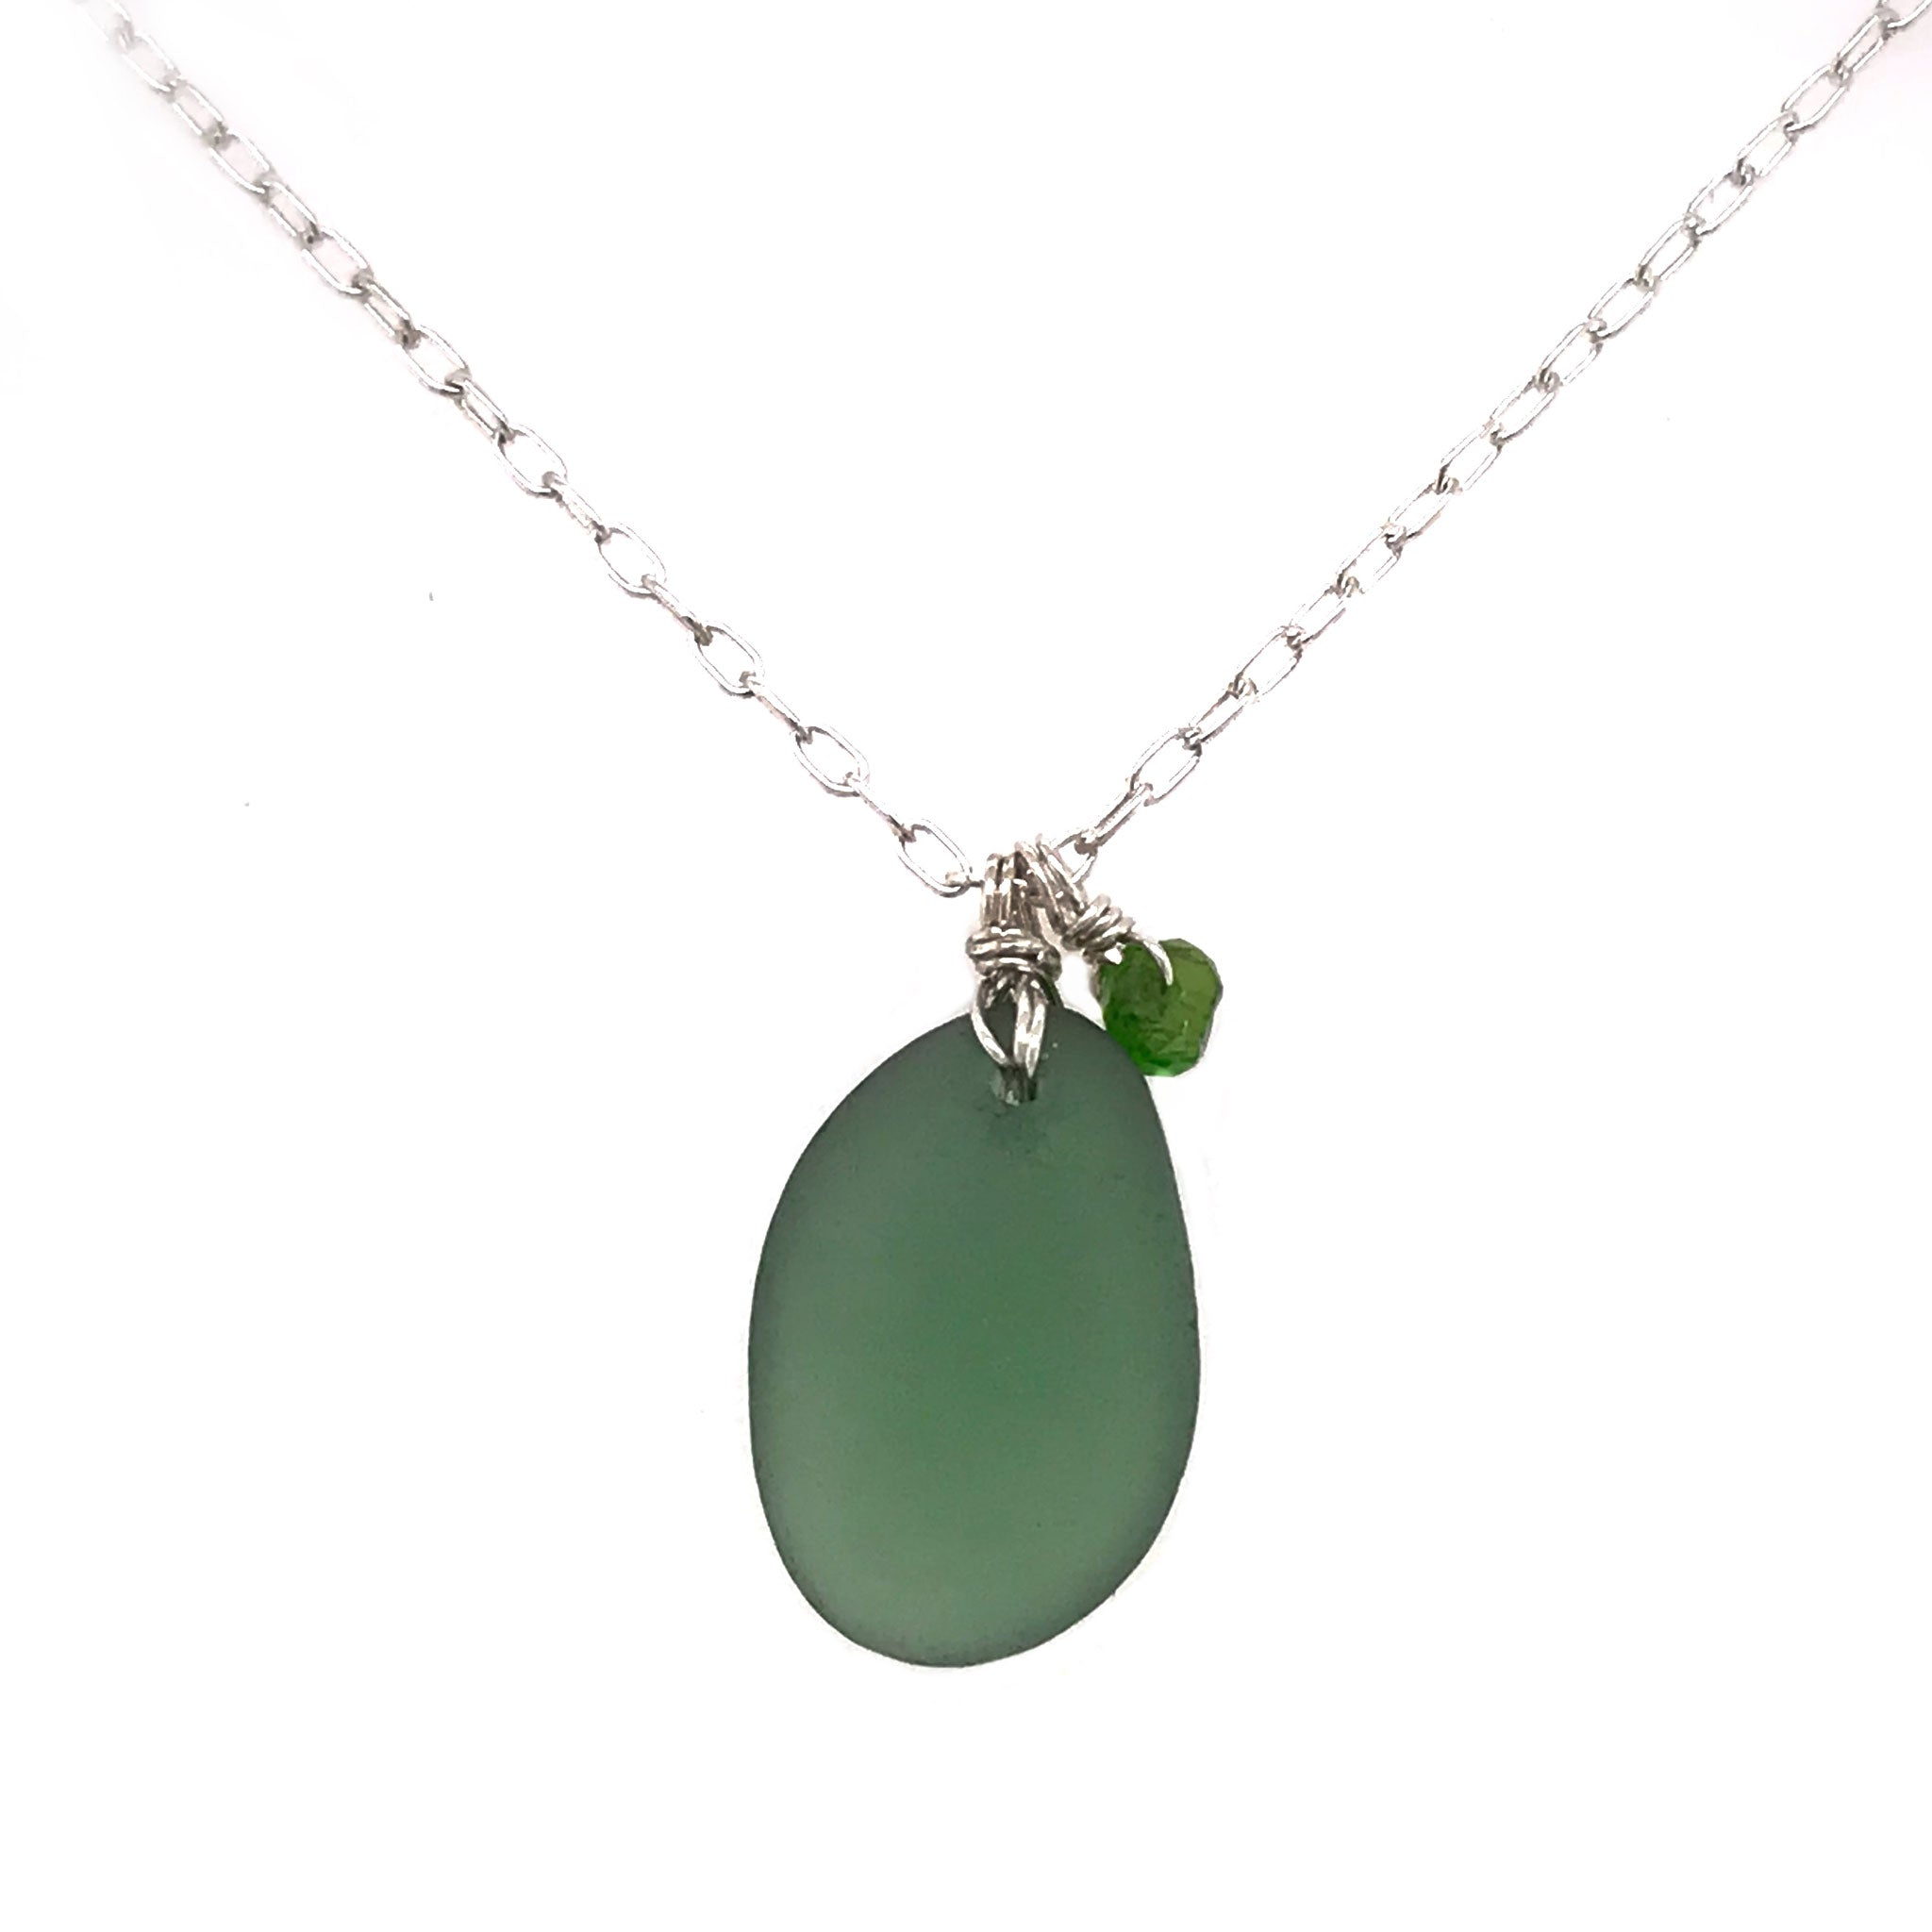 green beach glass on sterling silver necklace with tsavorite stones kriket Broadhurst jewellery